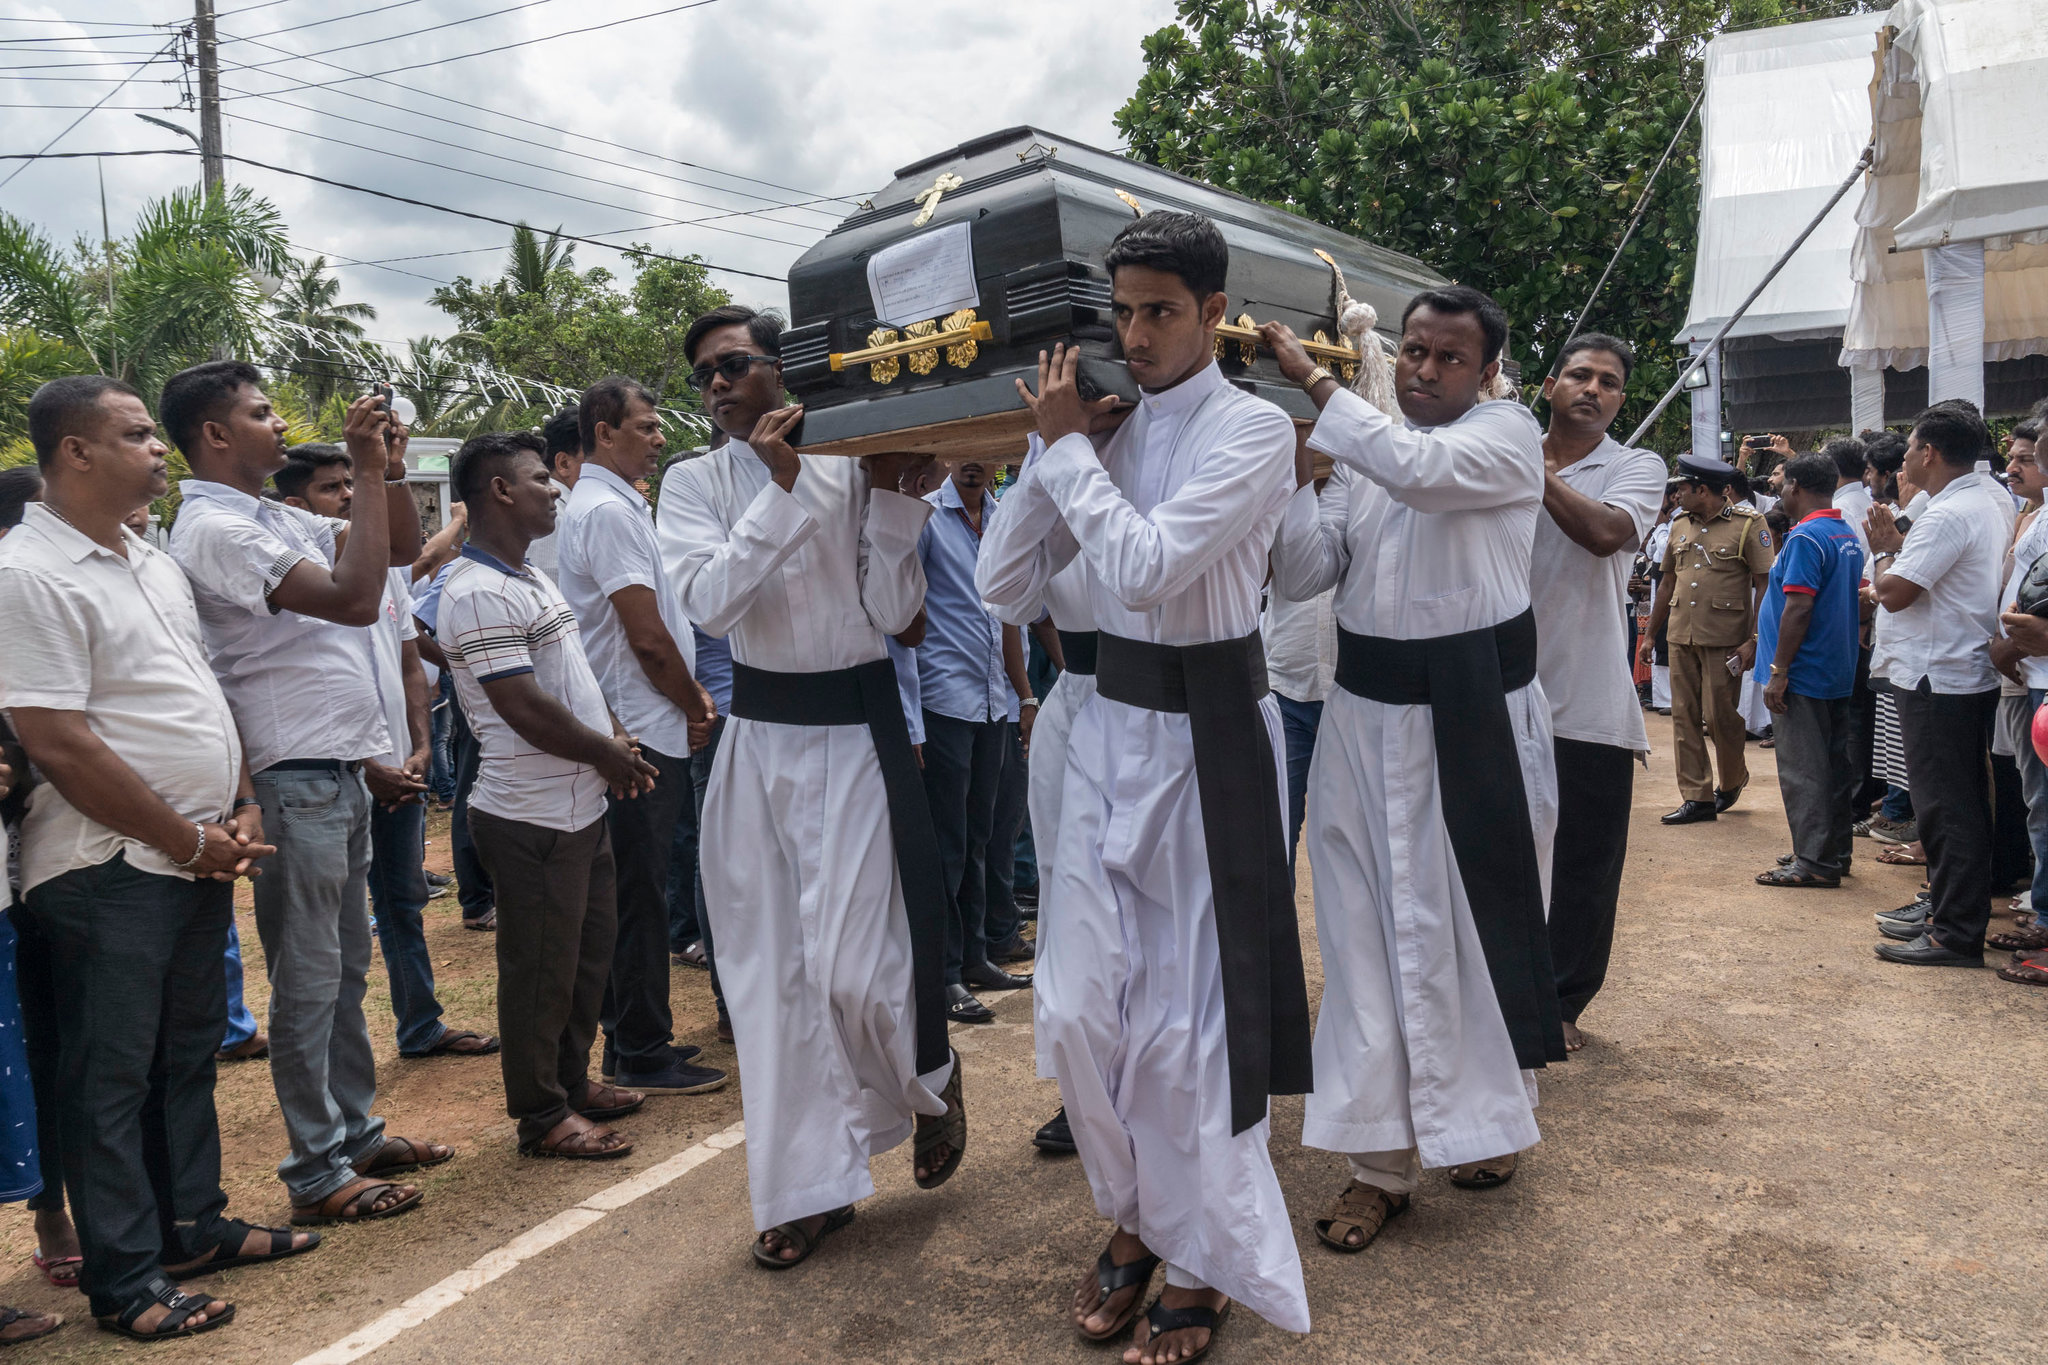 People carried coffins for burial on Tuesday after a group funeral Mass for victims of the Easter Sunday bombings, at St. Sebastian's Church in Negombo, Sri Lanka.CreditCreditAdam Dean for The New York Times